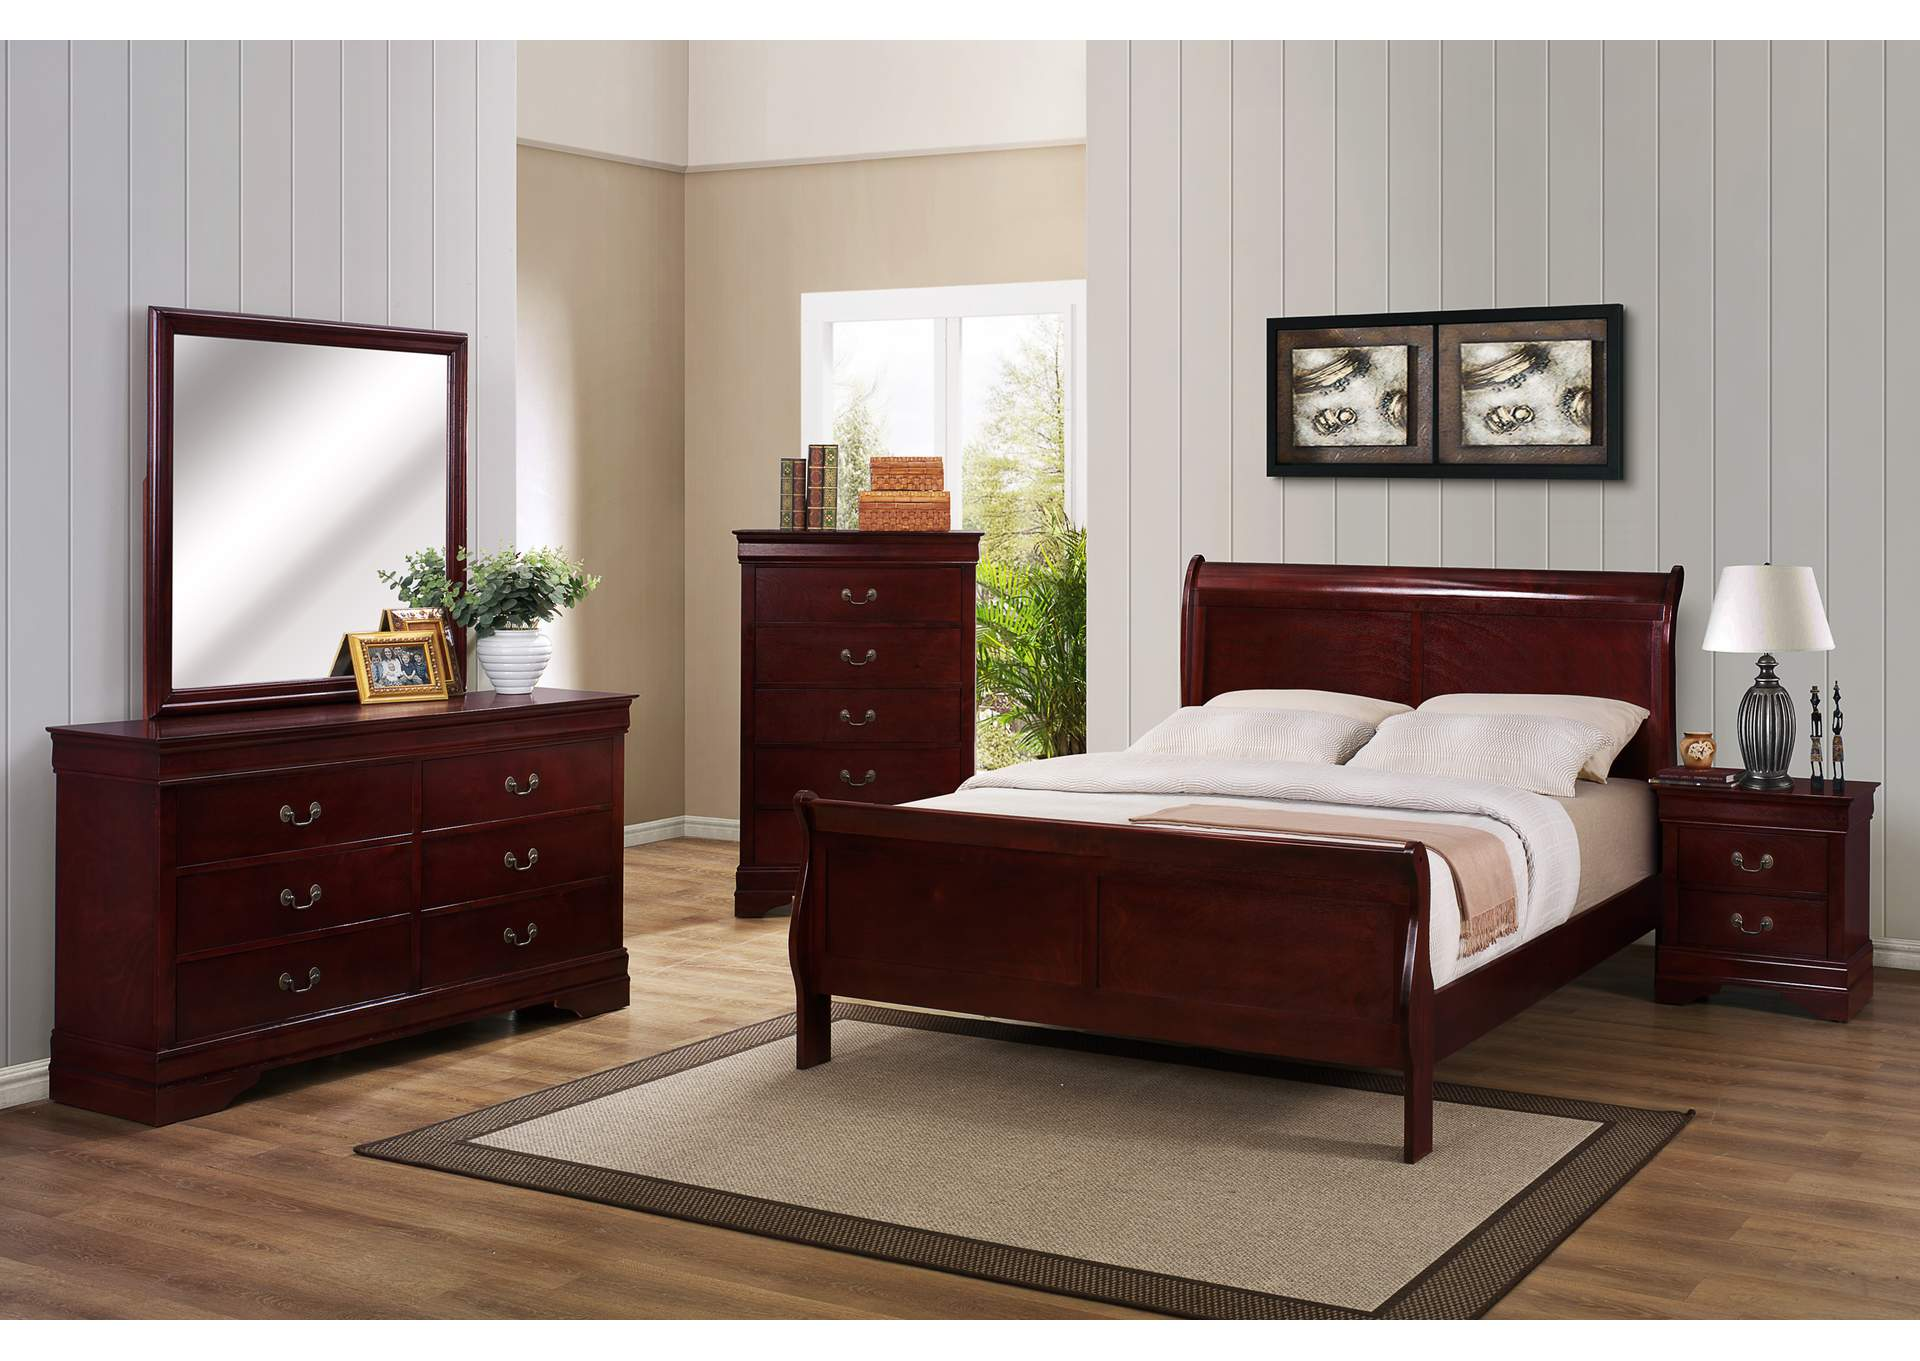 Louis Philip Cherry Queen Bed w/6 Drawer Dresser, Mirror and Nightstand,Crown Mark